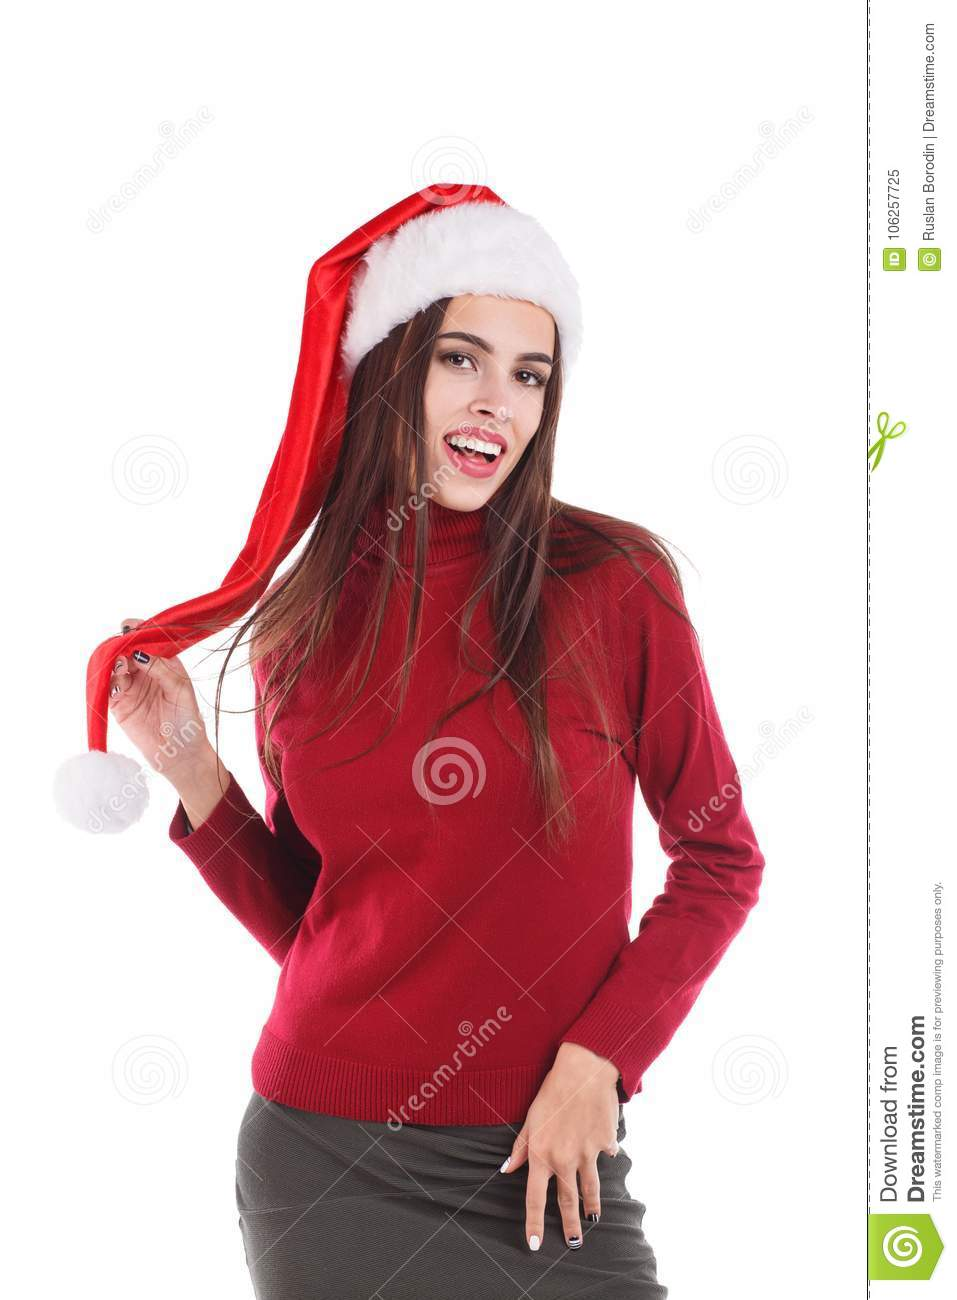 Woman In Red Sweater And Santas Hat Posing While Standing Holding Hand Over Fluffy Pompon Hat And Smiling Isolated